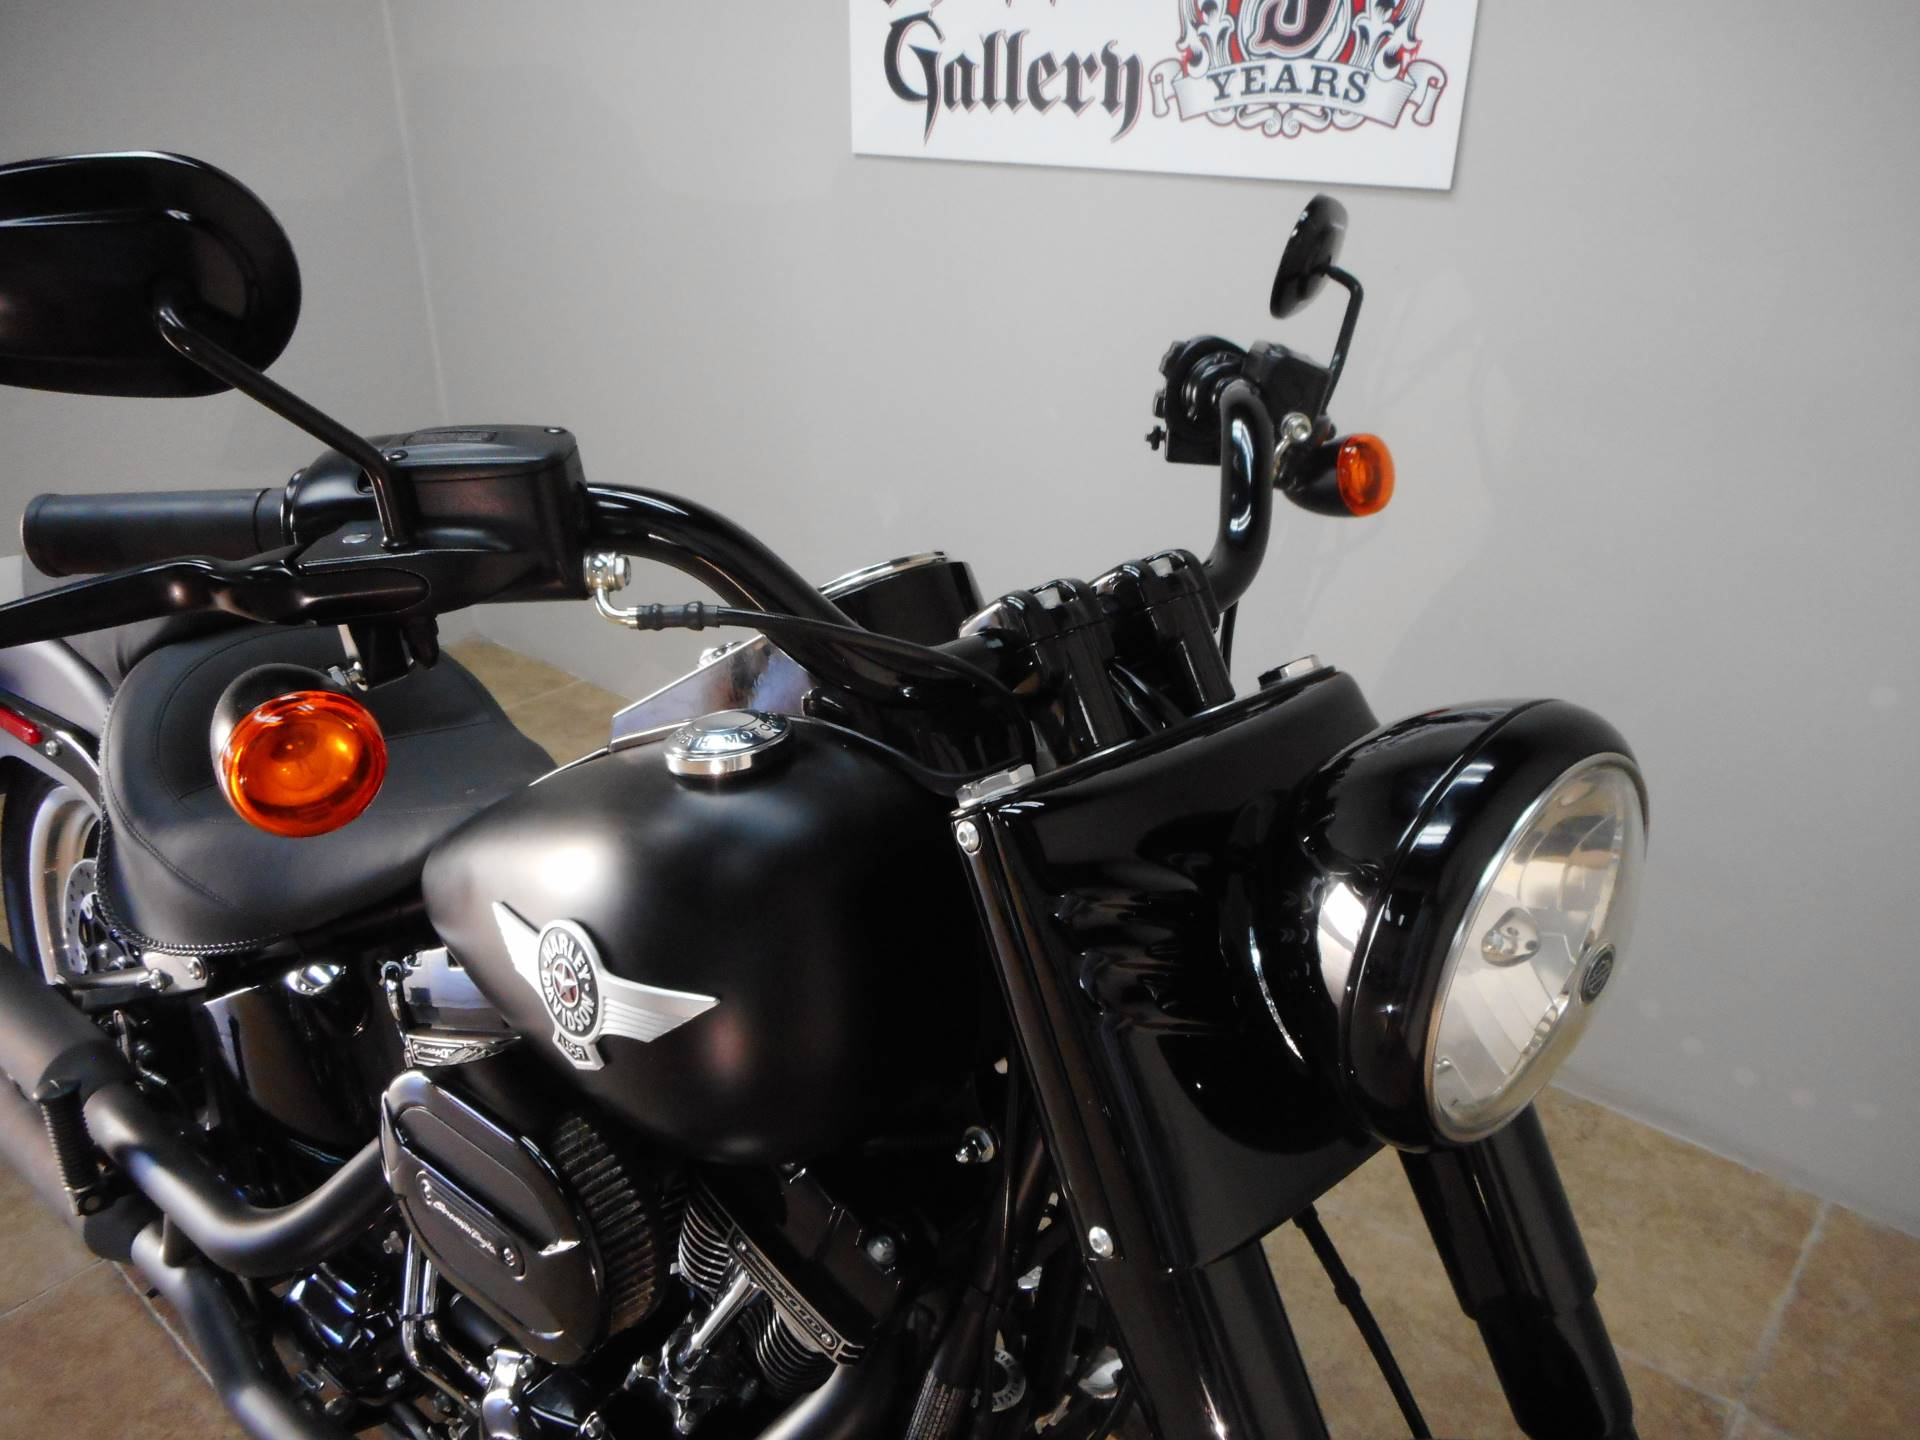 2016 Harley-Davidson Fat Boy® S in Temecula, California